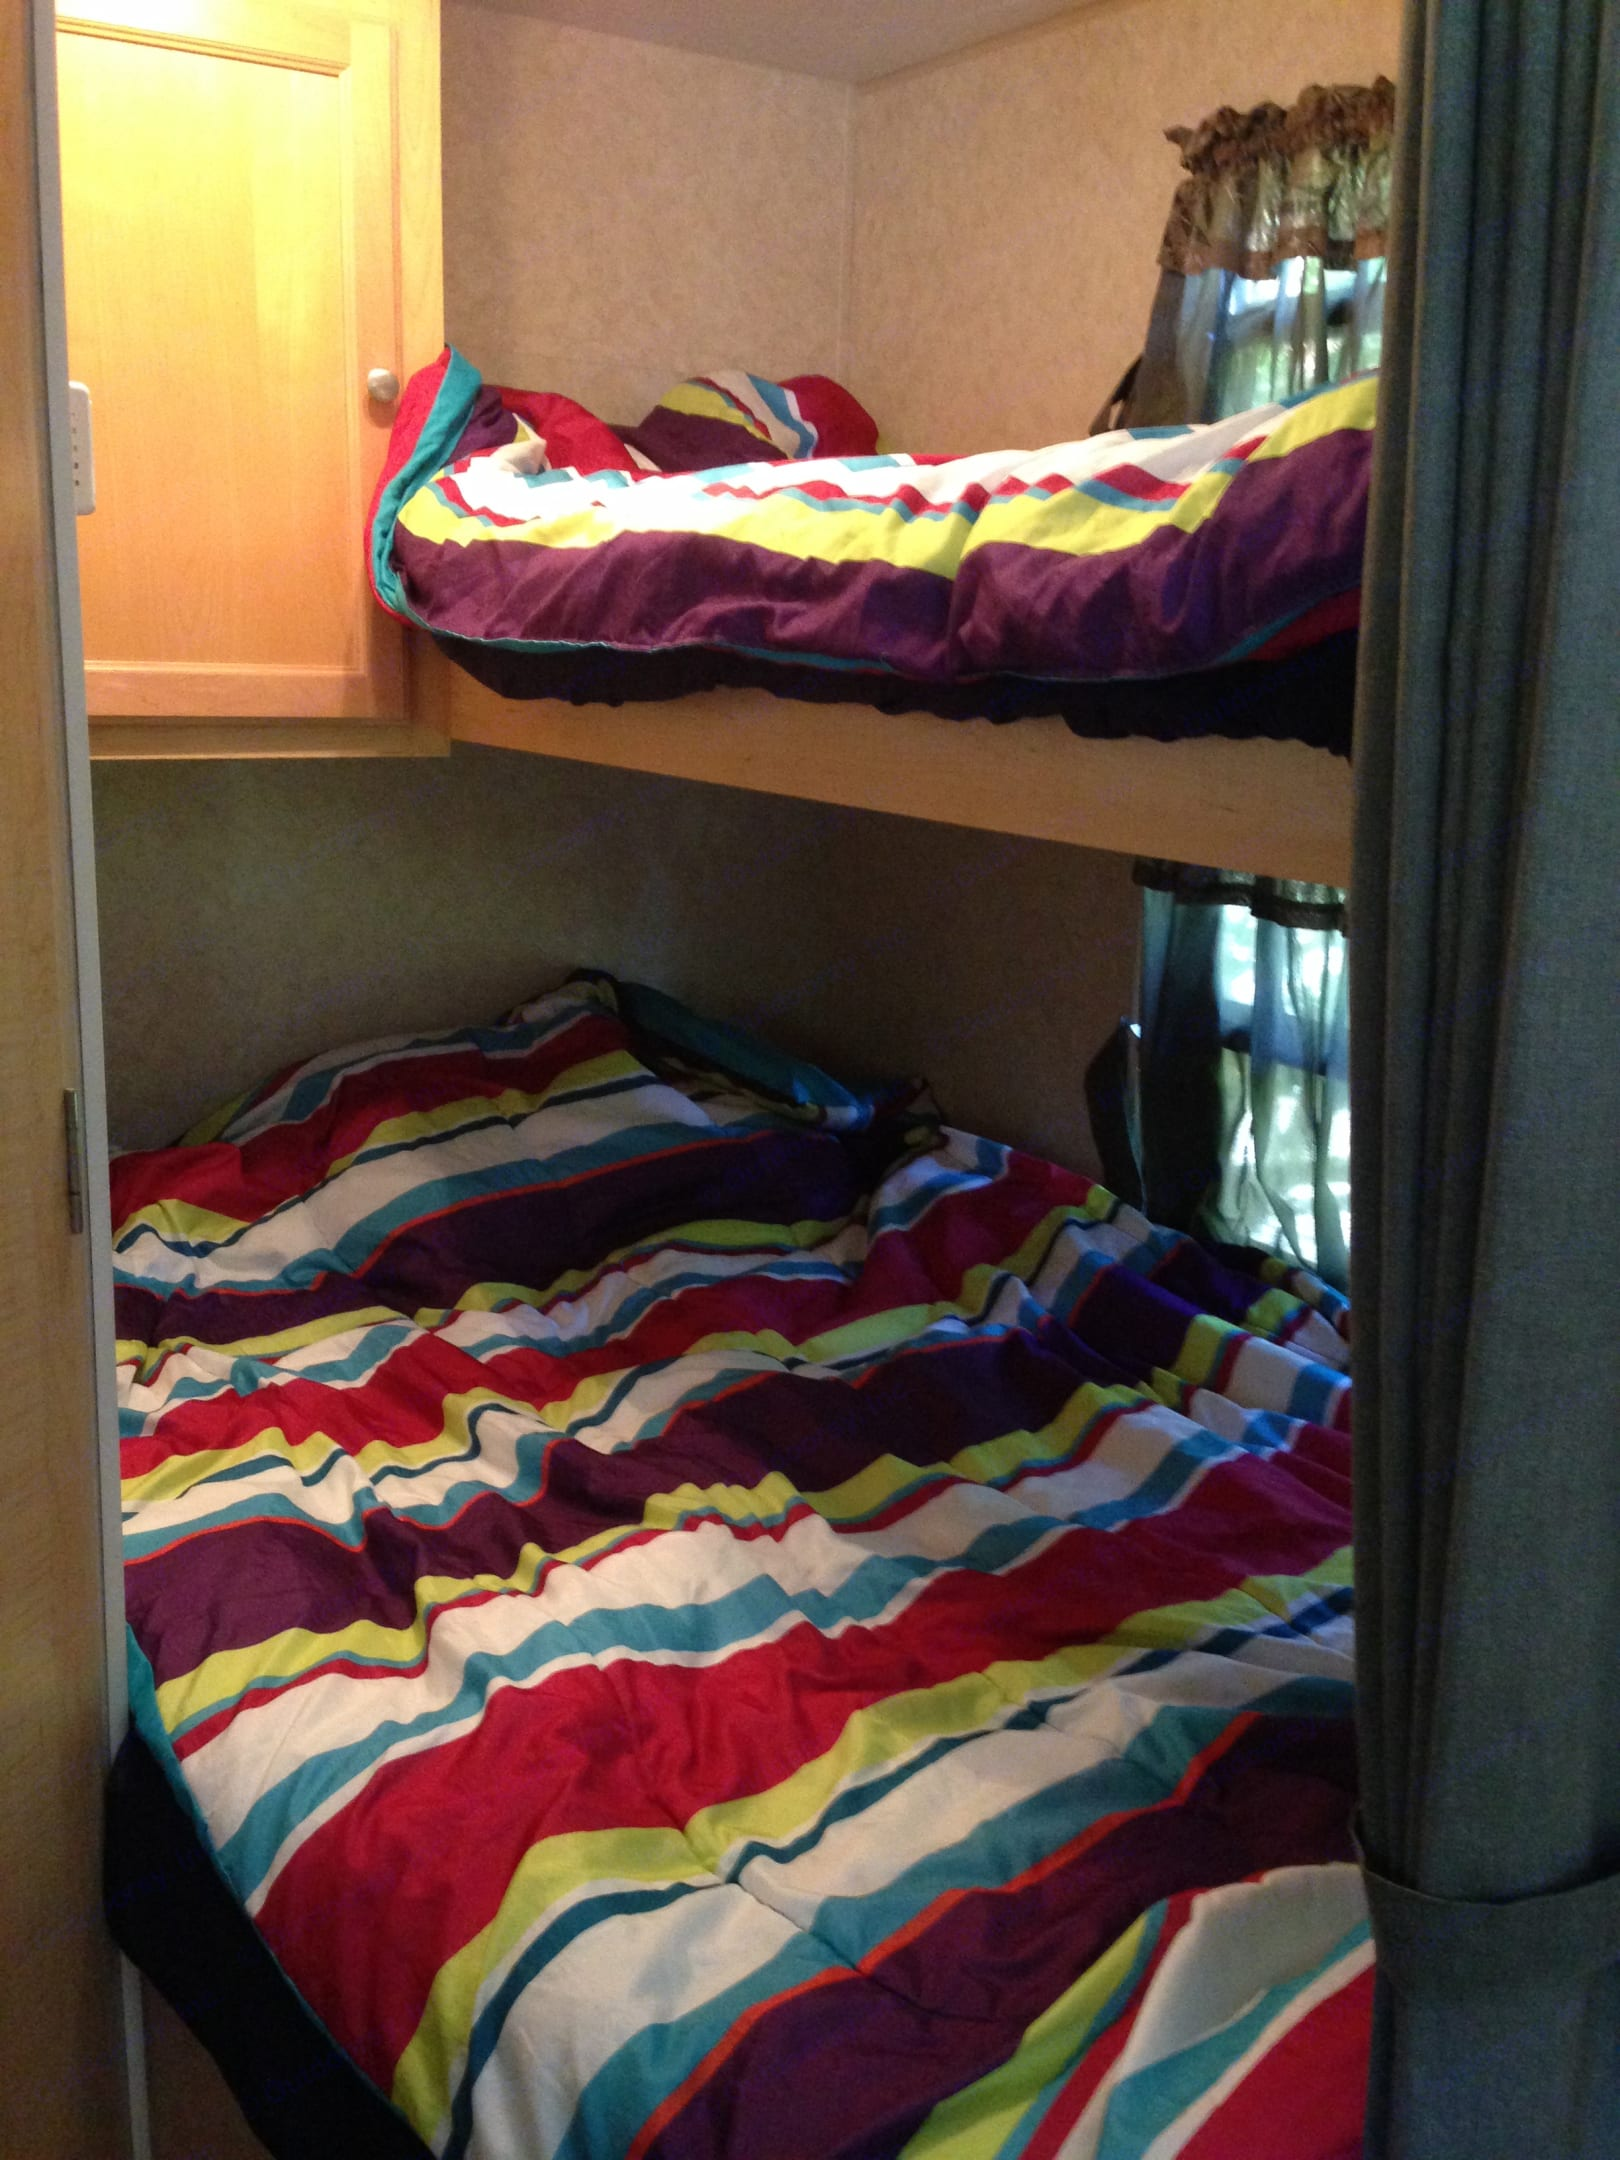 Jack and Jill bunks allow one person to sleep on the top and 1 large person or 2 smaller children to sleep on the bottom bed!. trail lite trailcruiser 2006